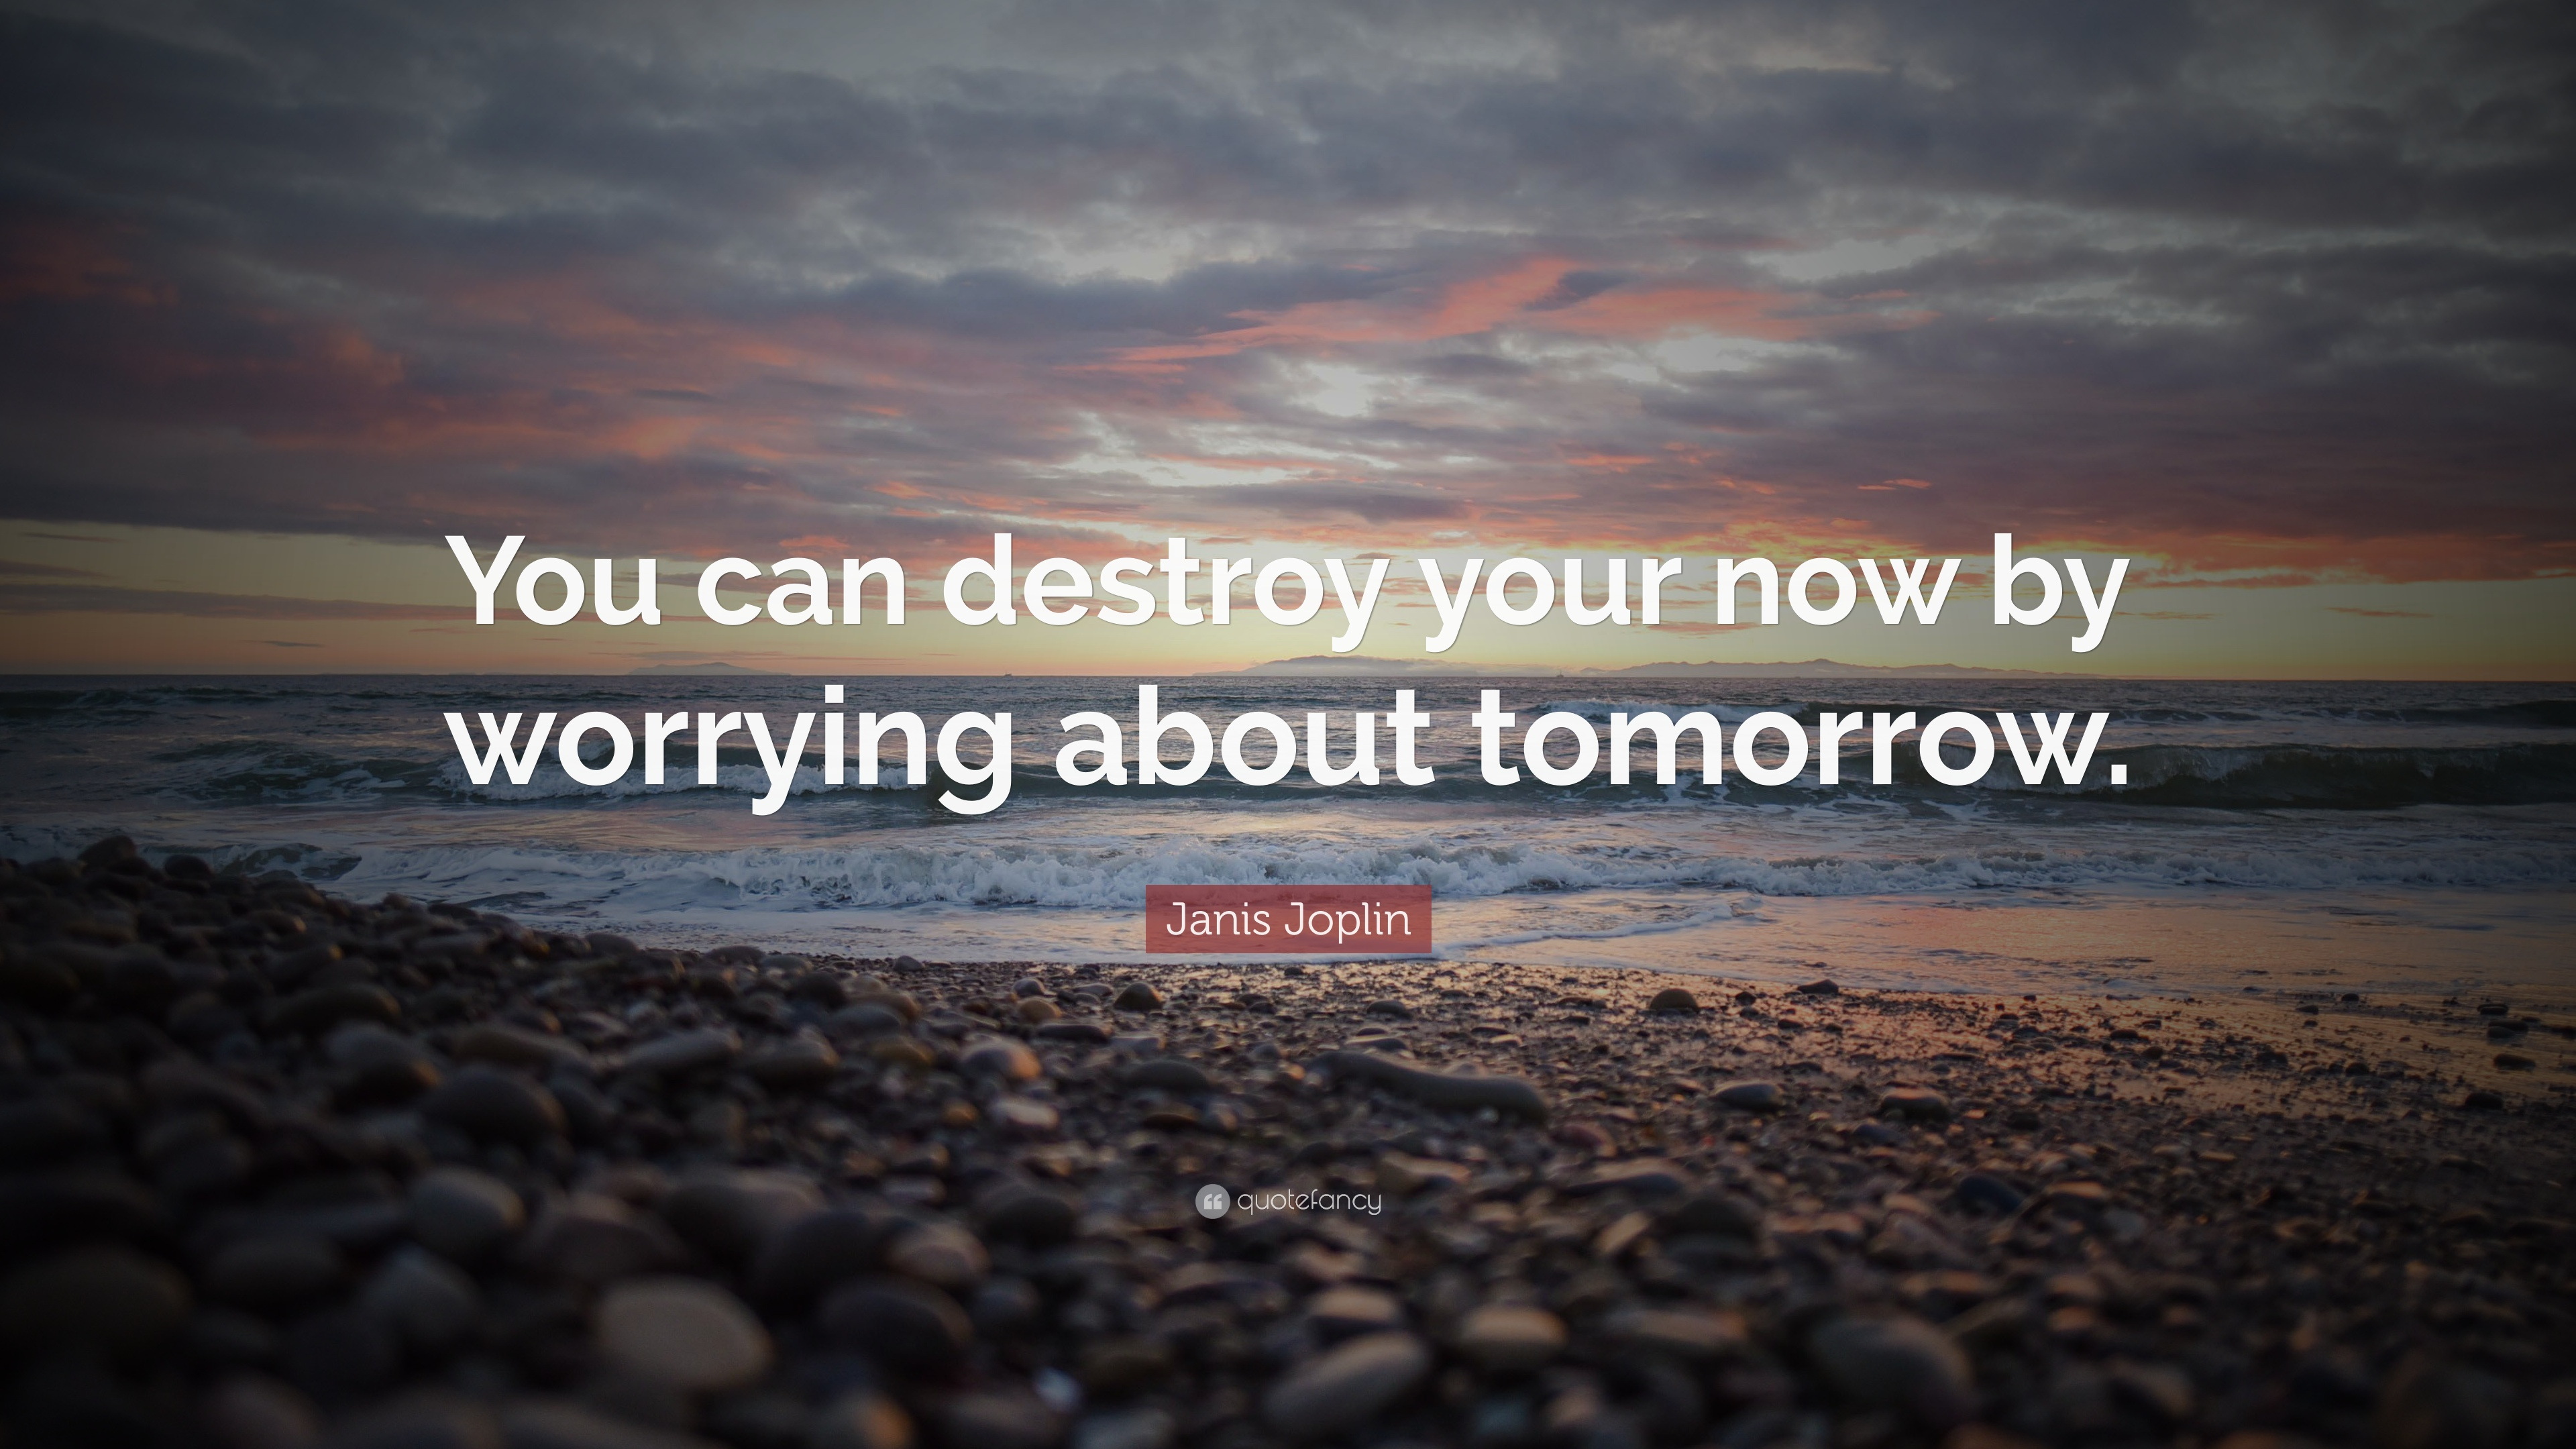 Exceptional Adventure Quotes: U201cYou Can Destroy Your Now By Worrying About Tomorrow.u201d U2014